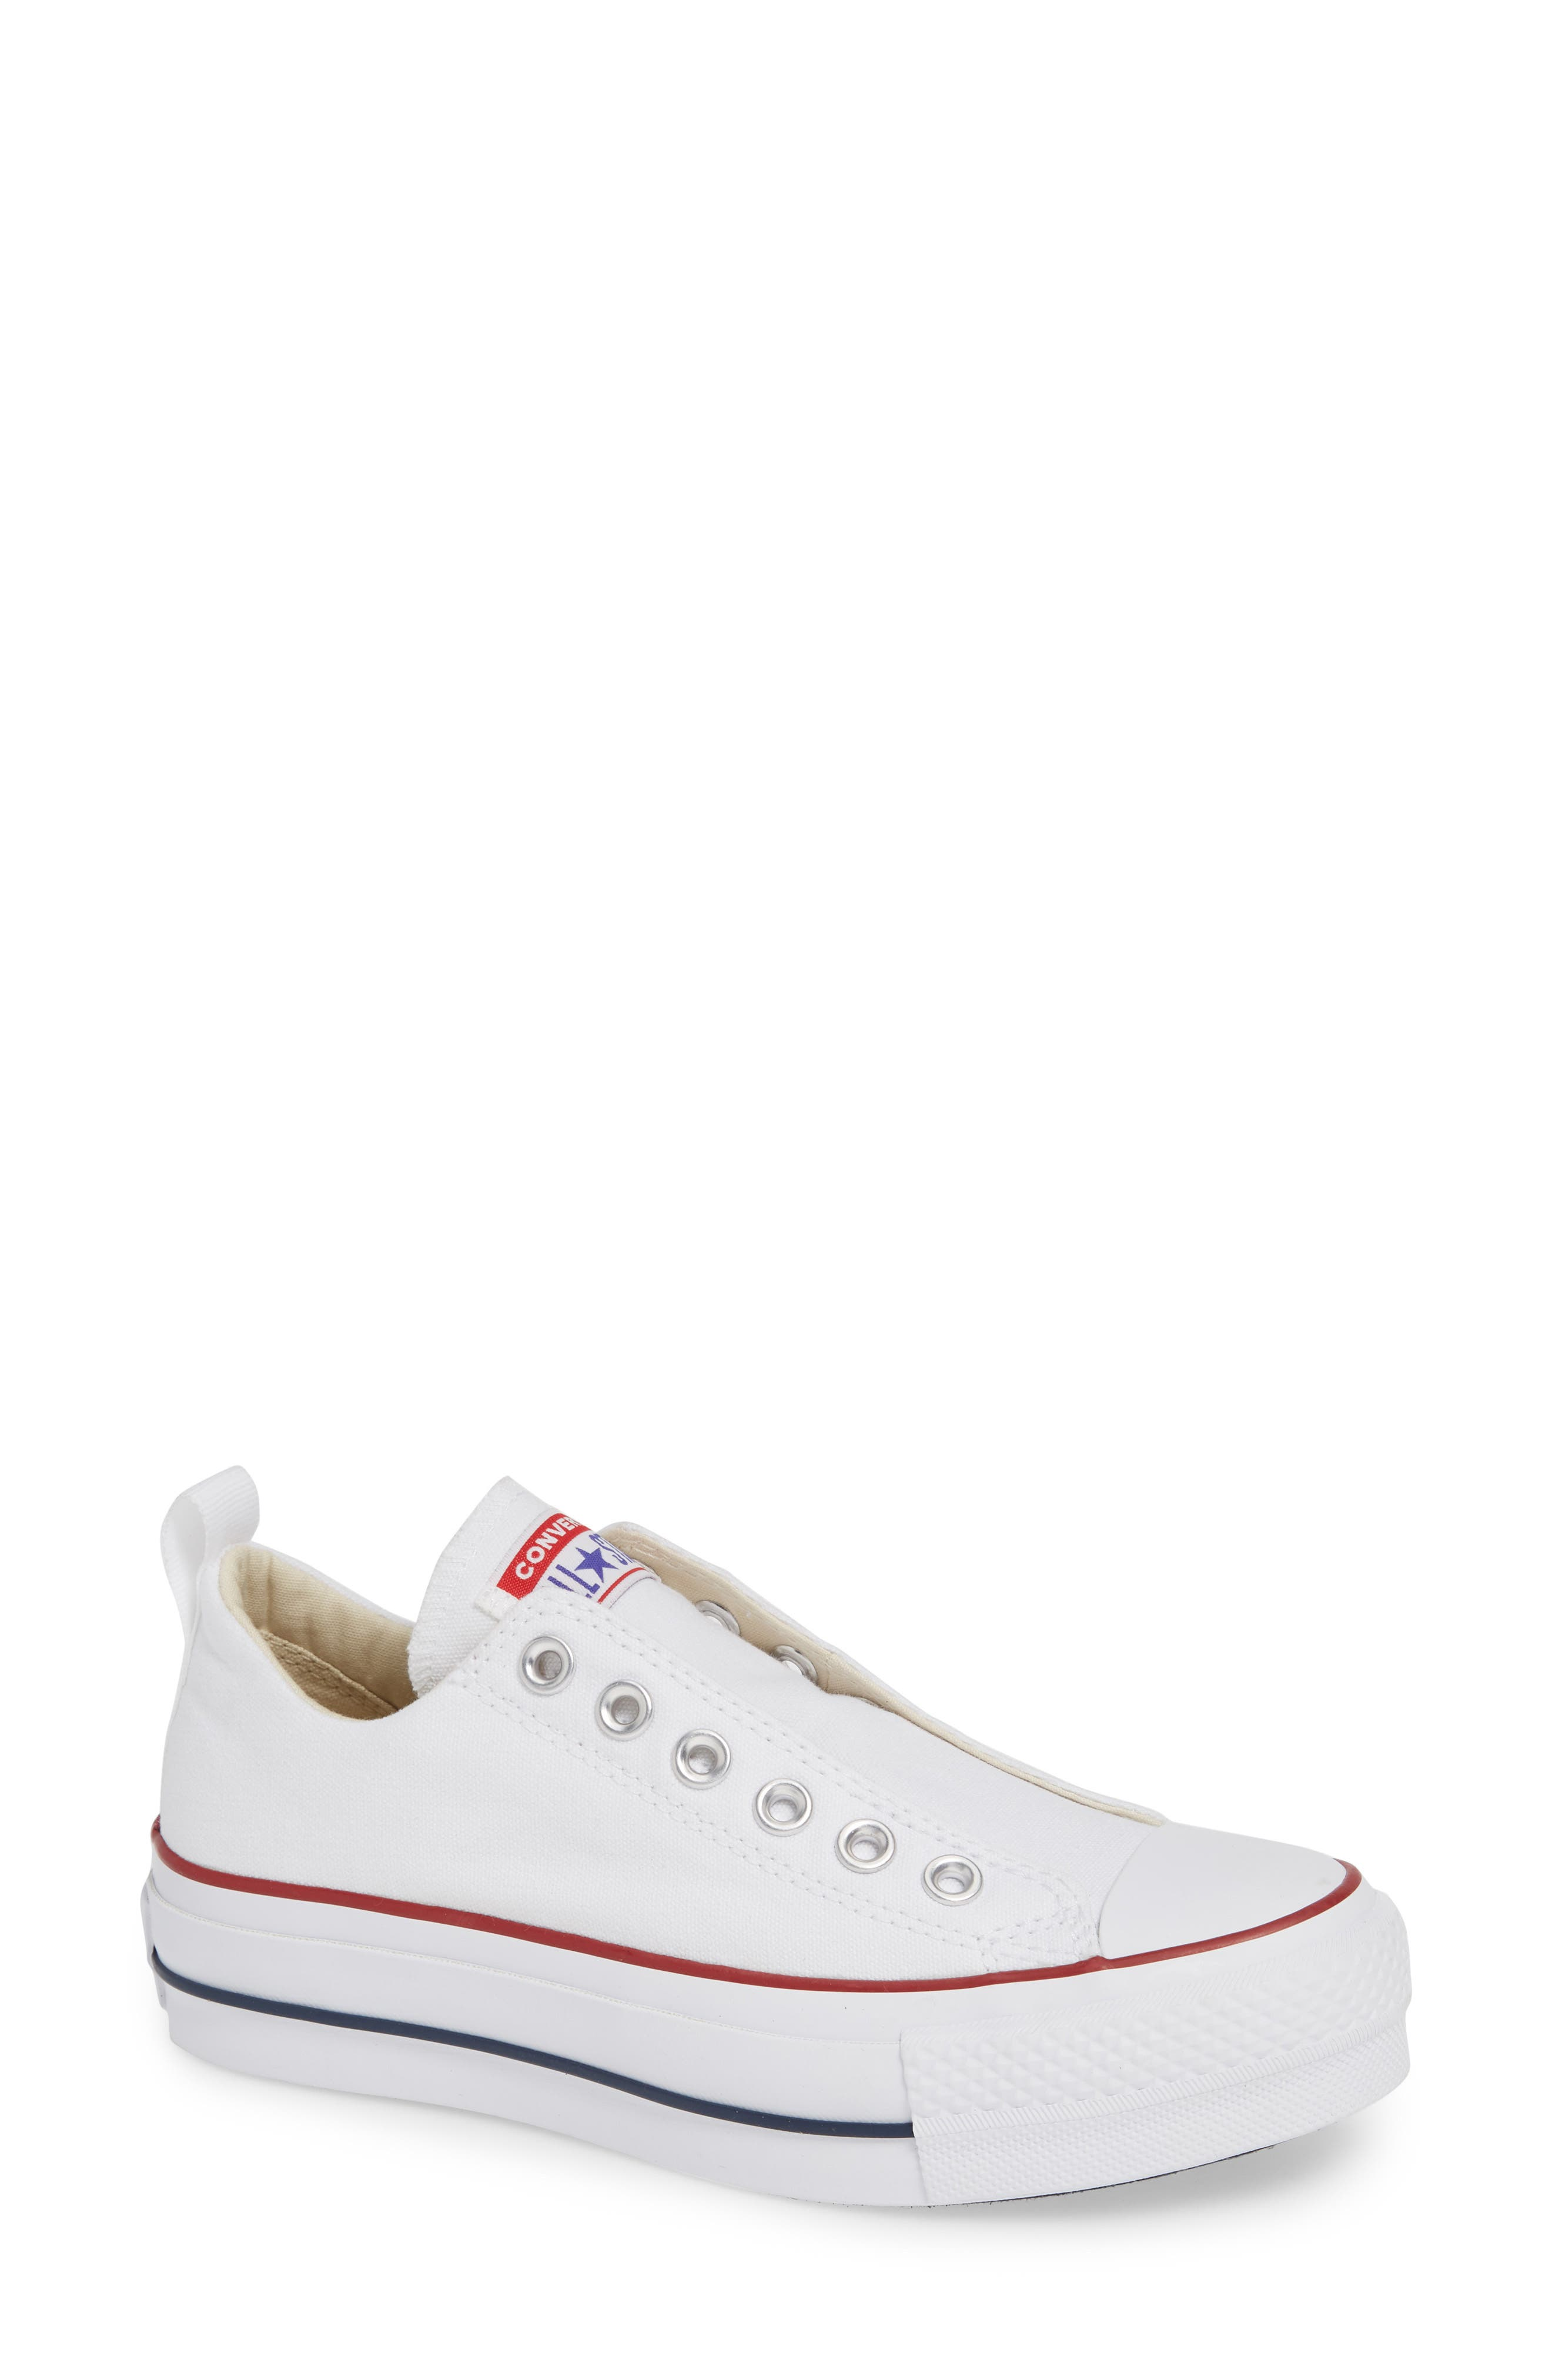 CONVERSE, Chuck Taylor<sup>®</sup> All Star<sup>®</sup> Low Top Sneaker, Main thumbnail 1, color, WHITE/ RED/ BLUE